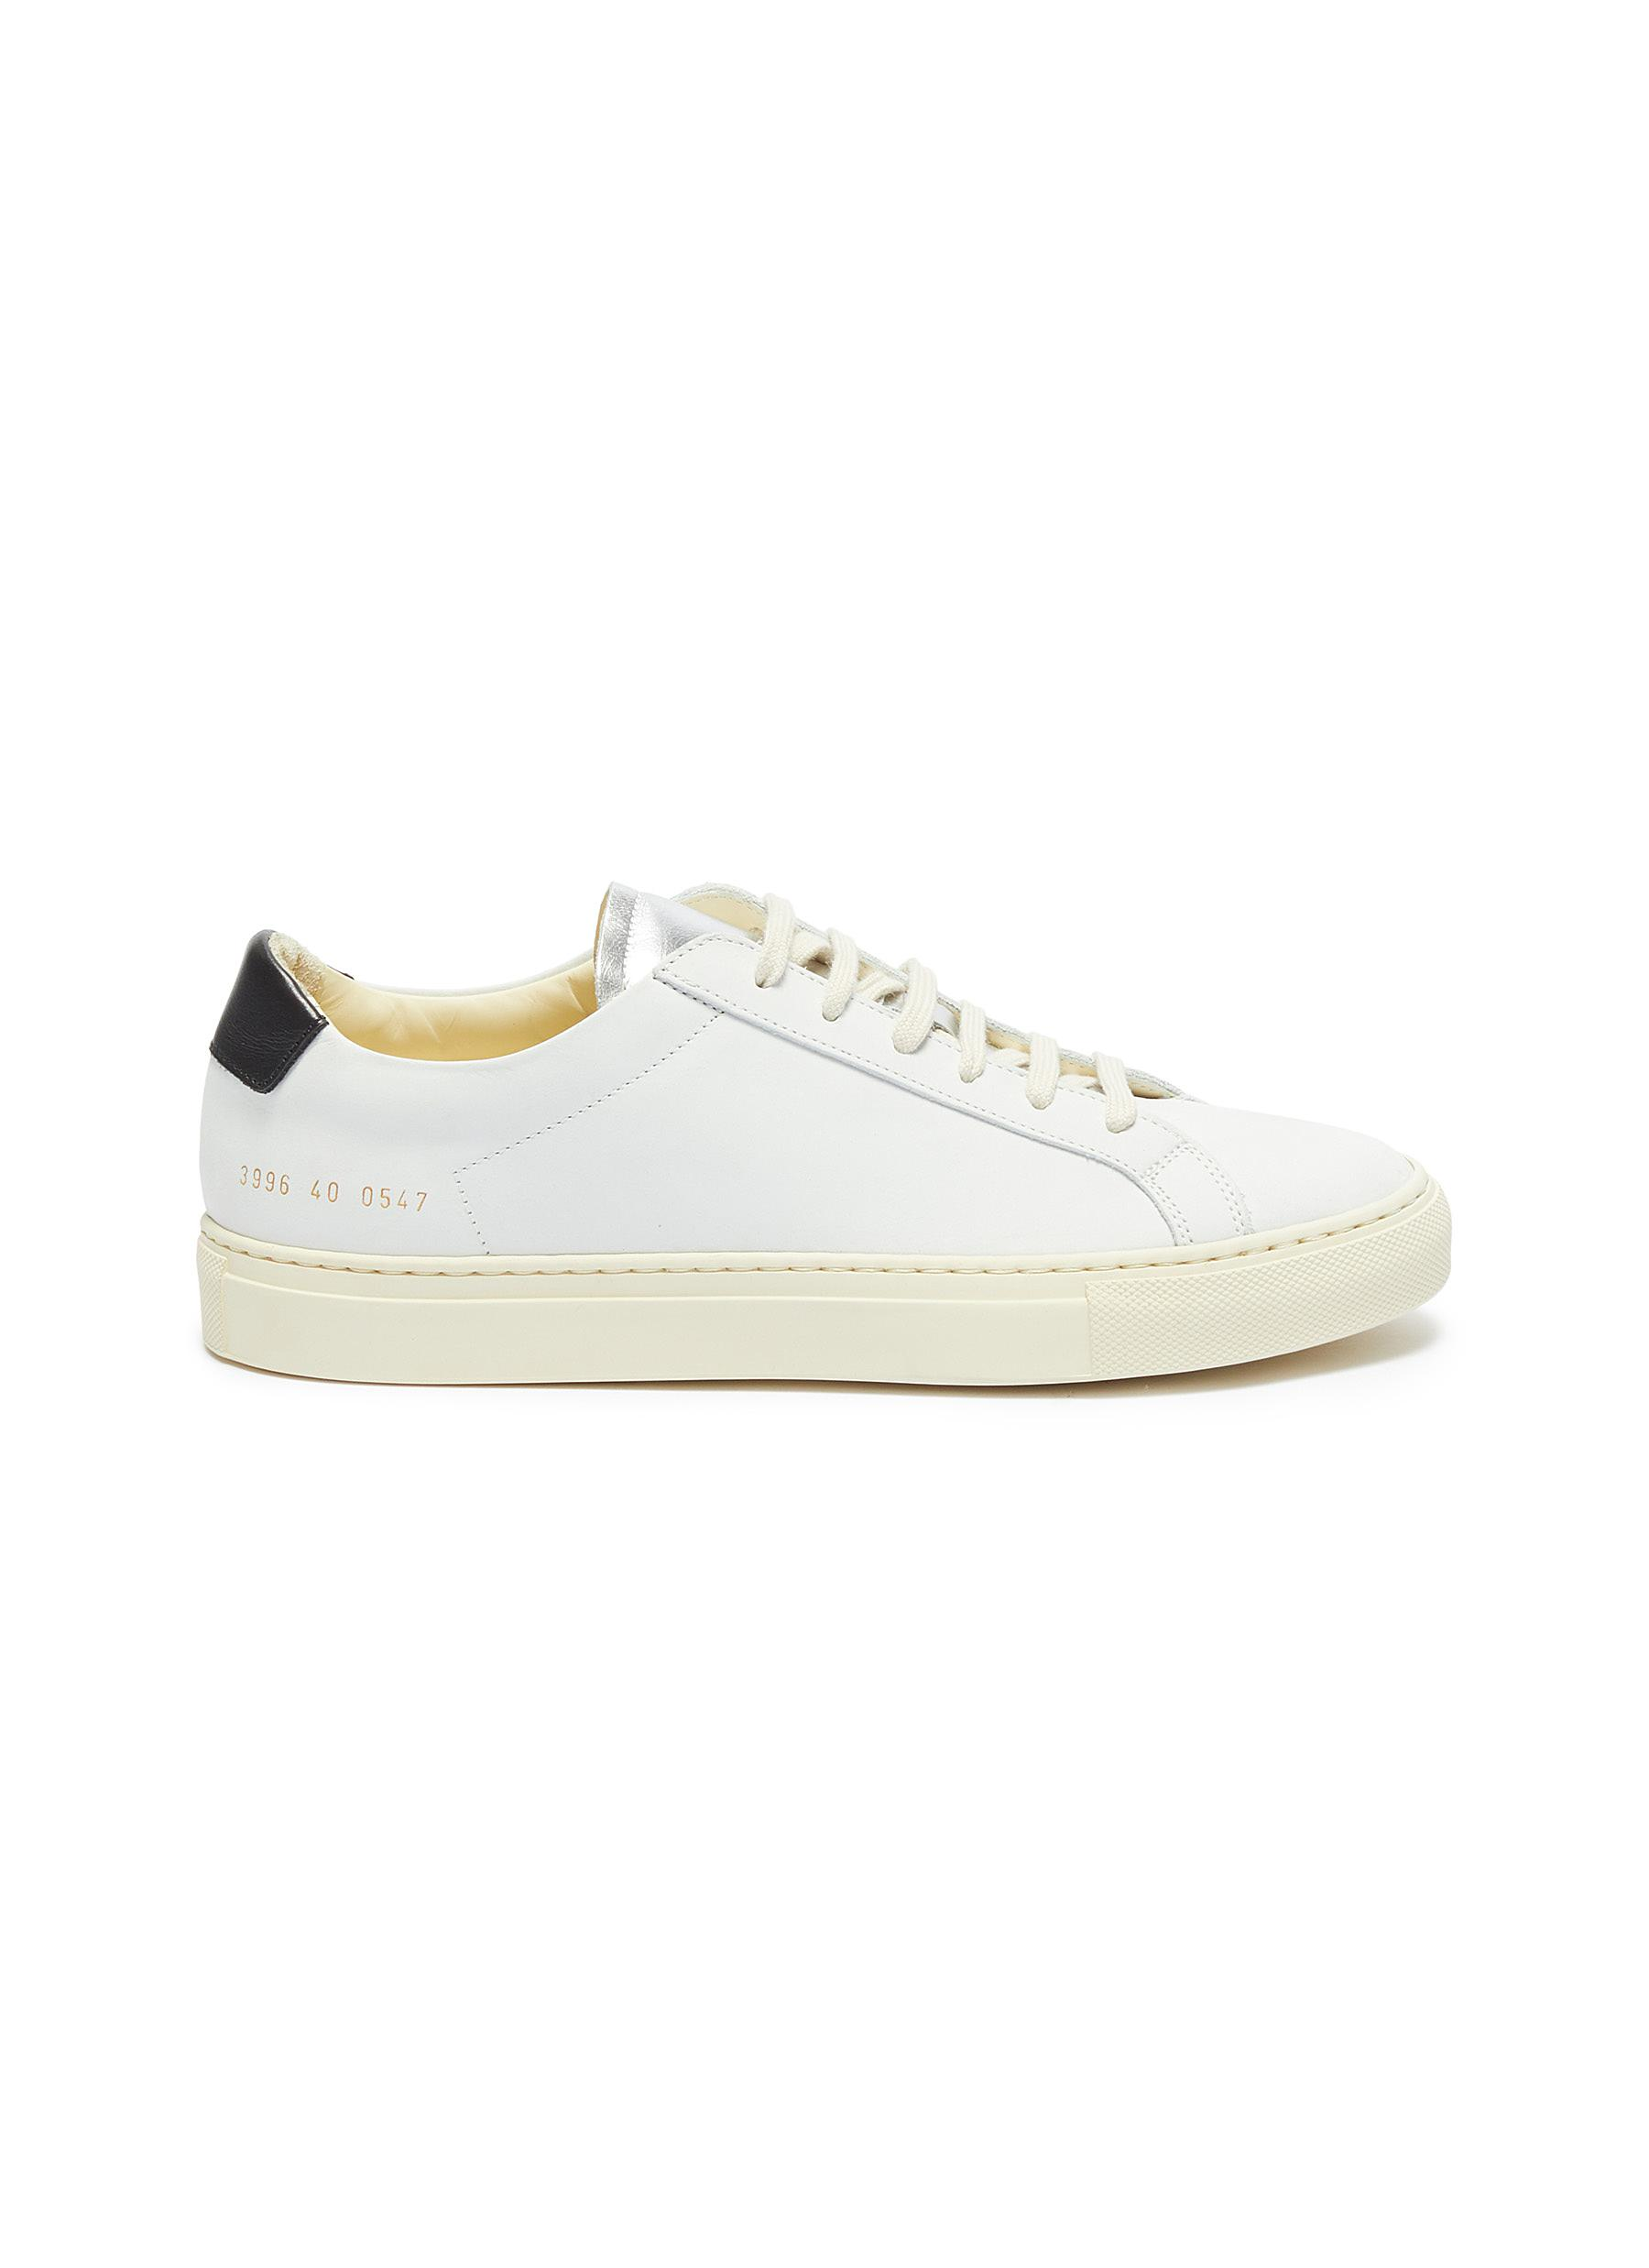 Retro Low leather metallic sneakers by Common Projects